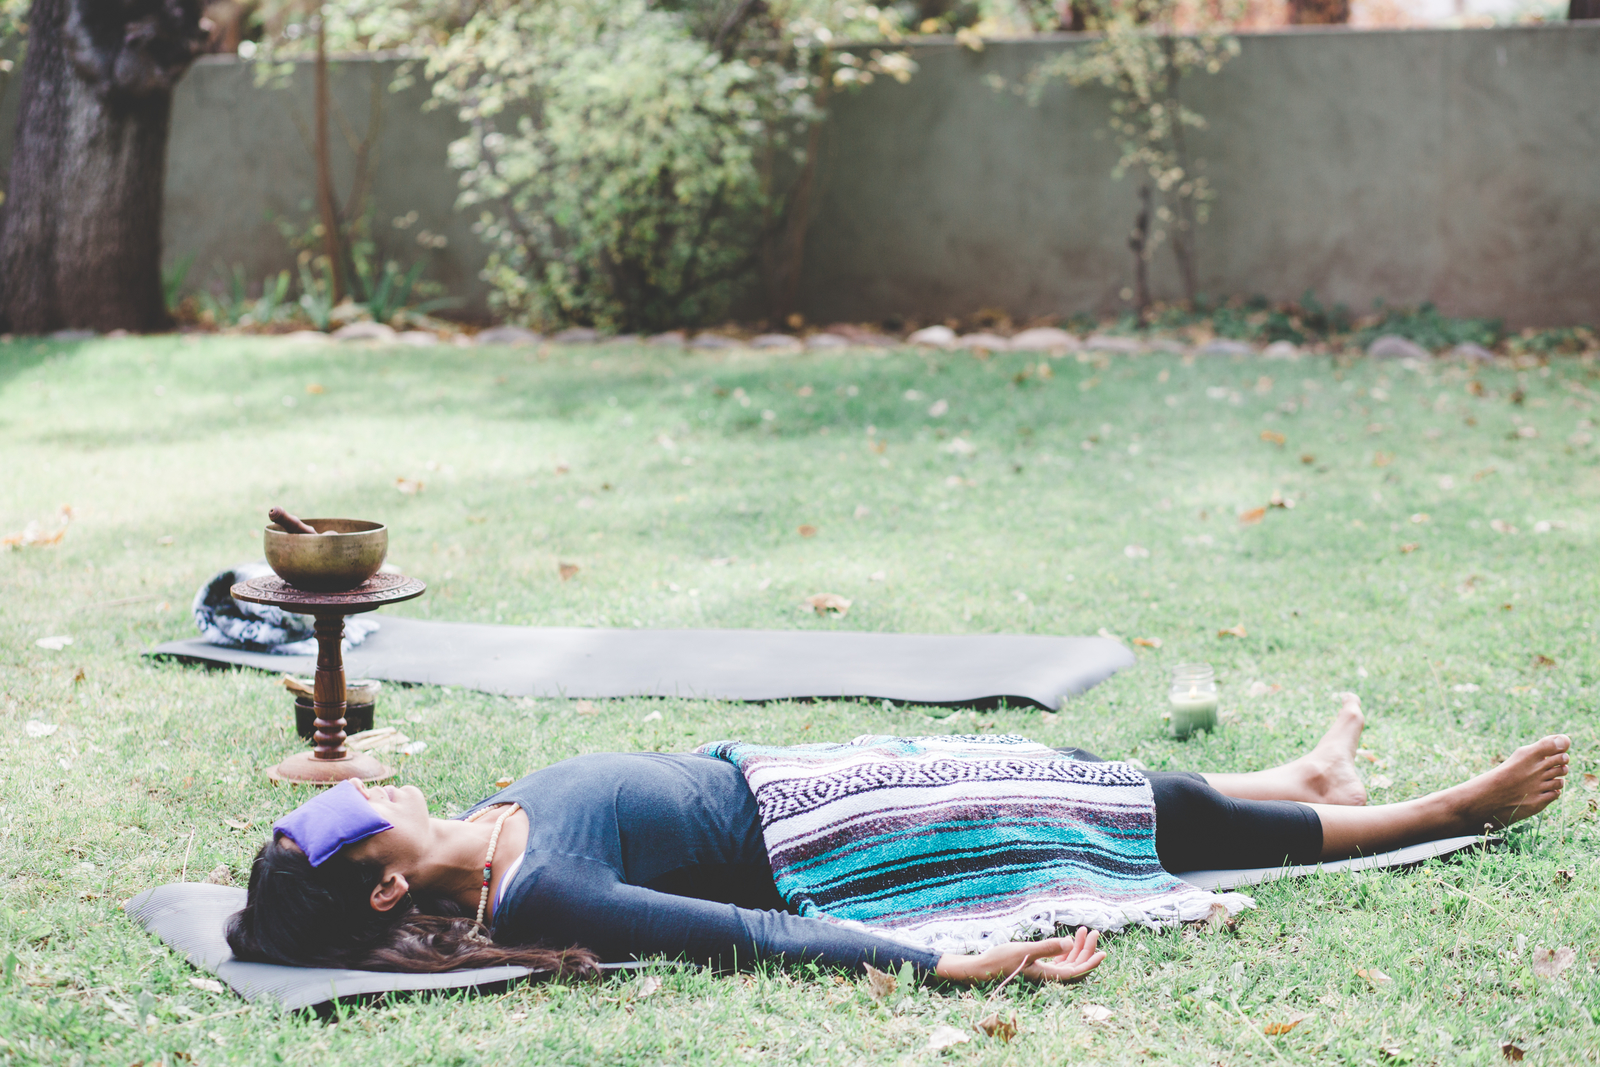 The Goddess Nidra aka Bone Breathing - A practice to connect with nourishing Earth energy. Great for when you want to deeply relax.